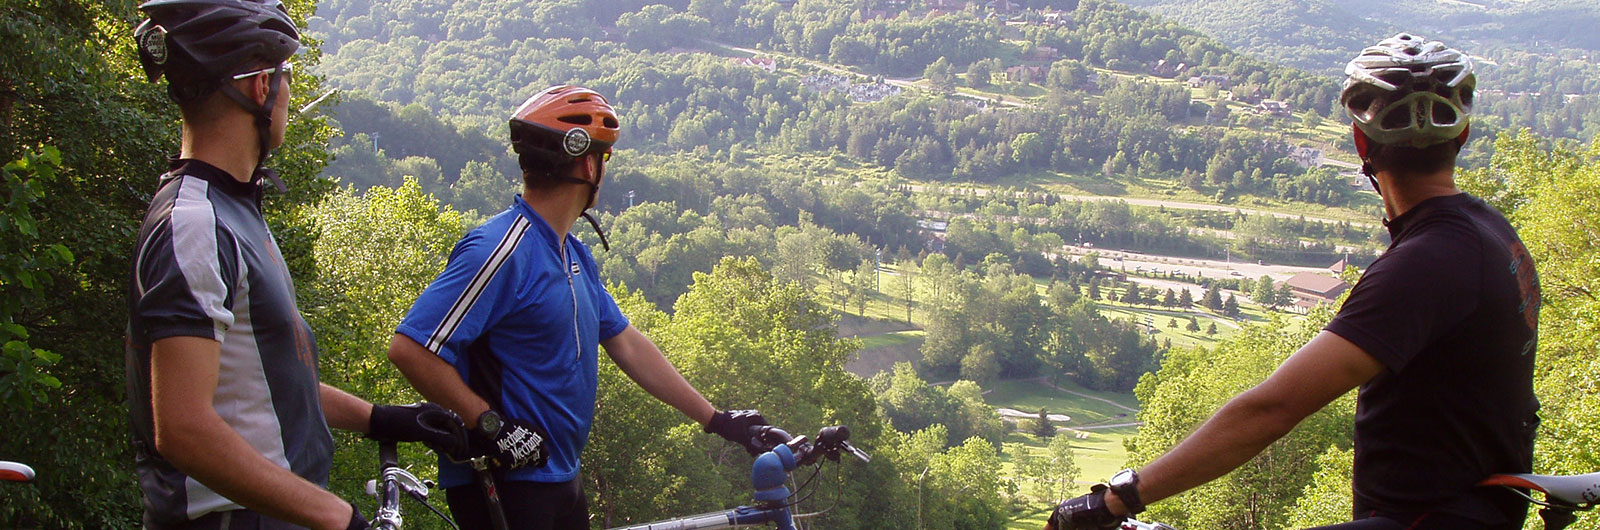 Mountain Bikers View from the top of the slopes